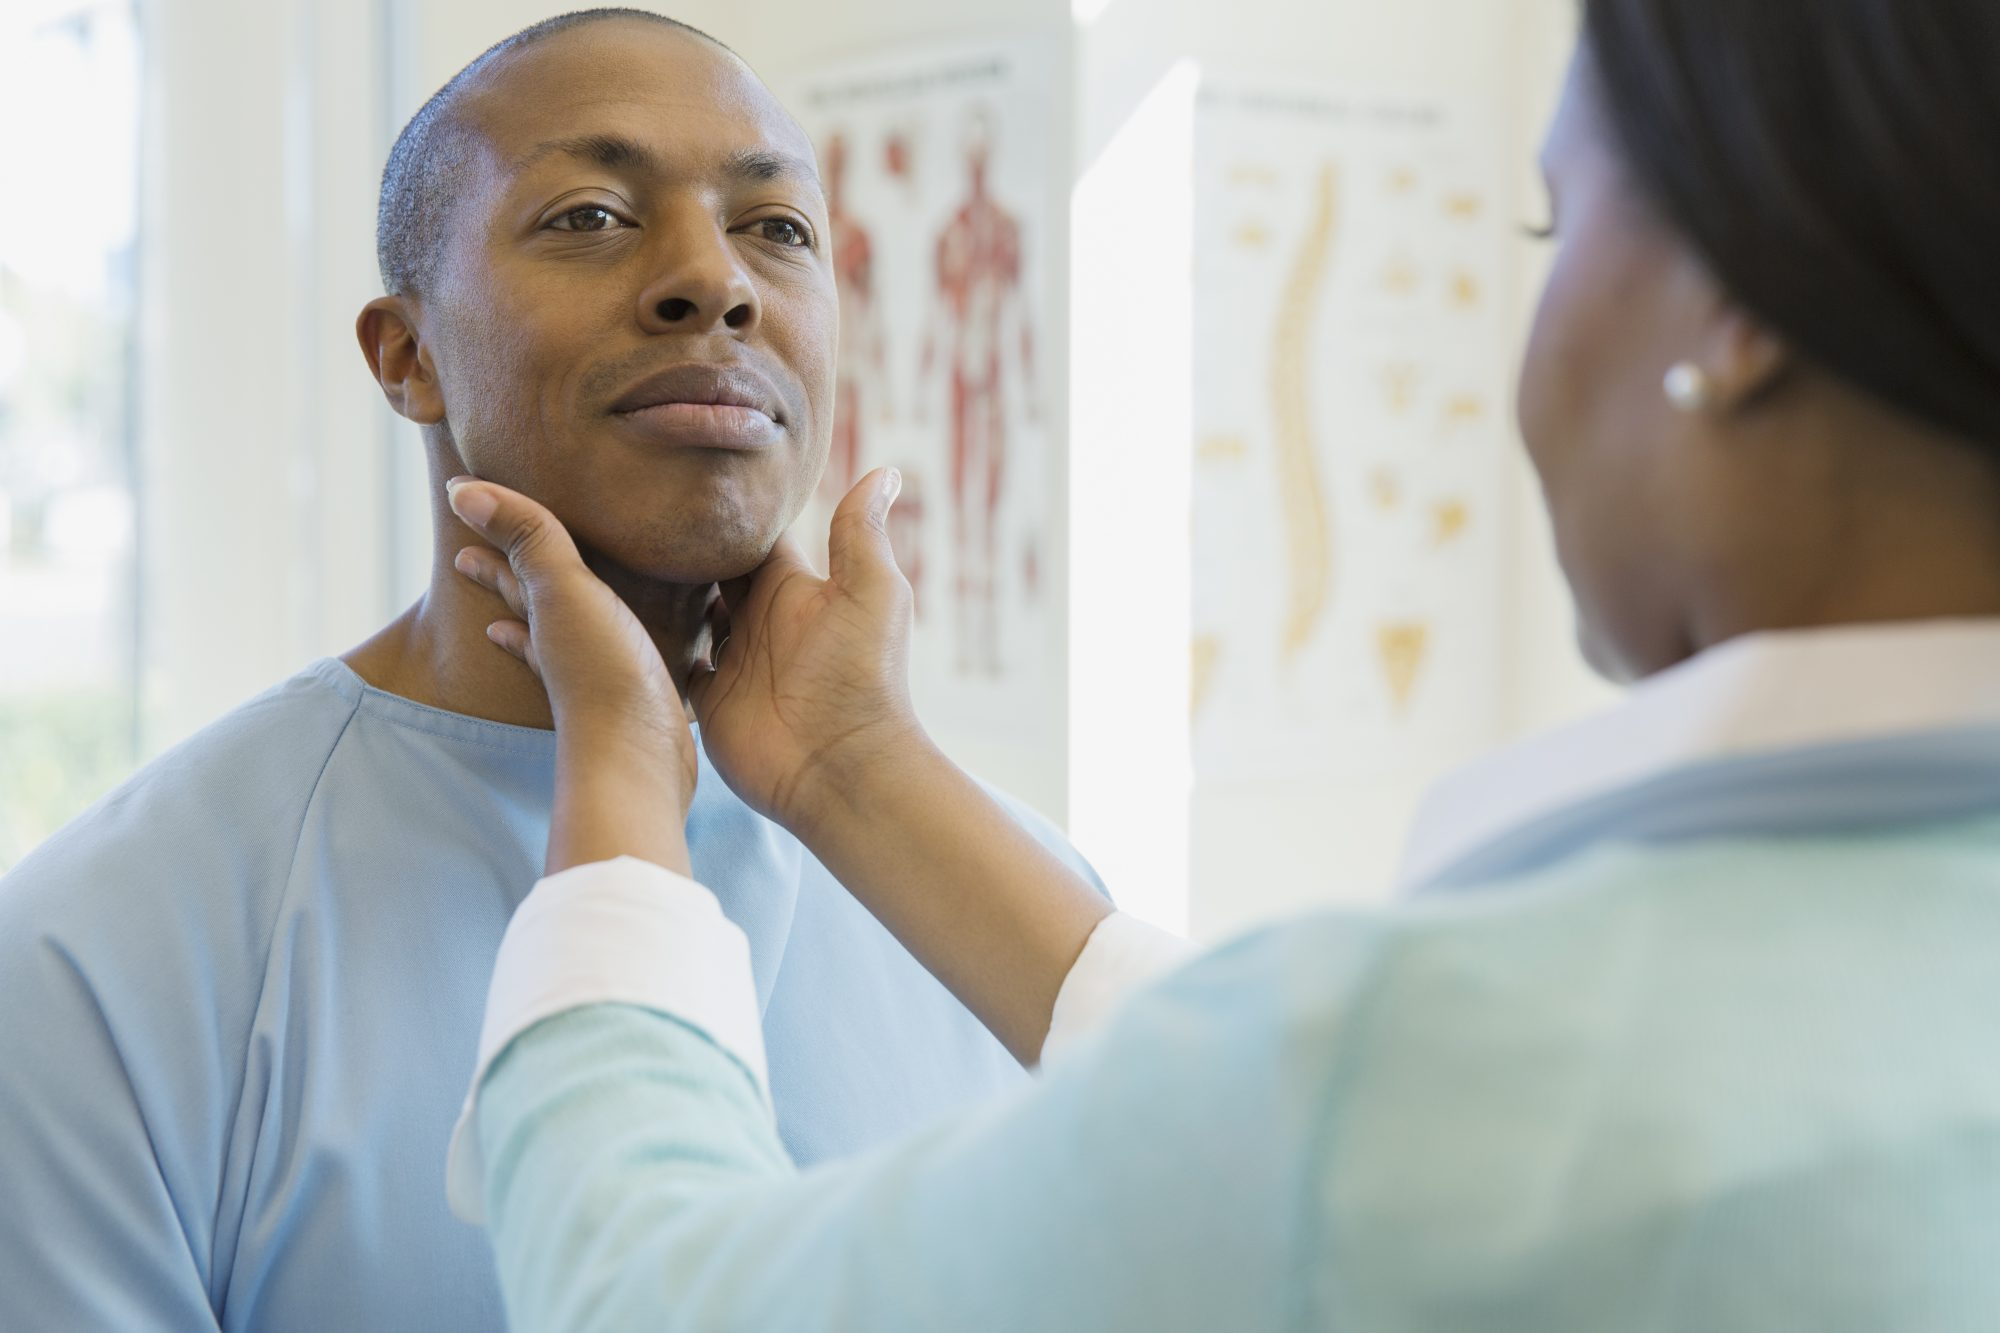 Myth: Only older women can develop thyroid problems